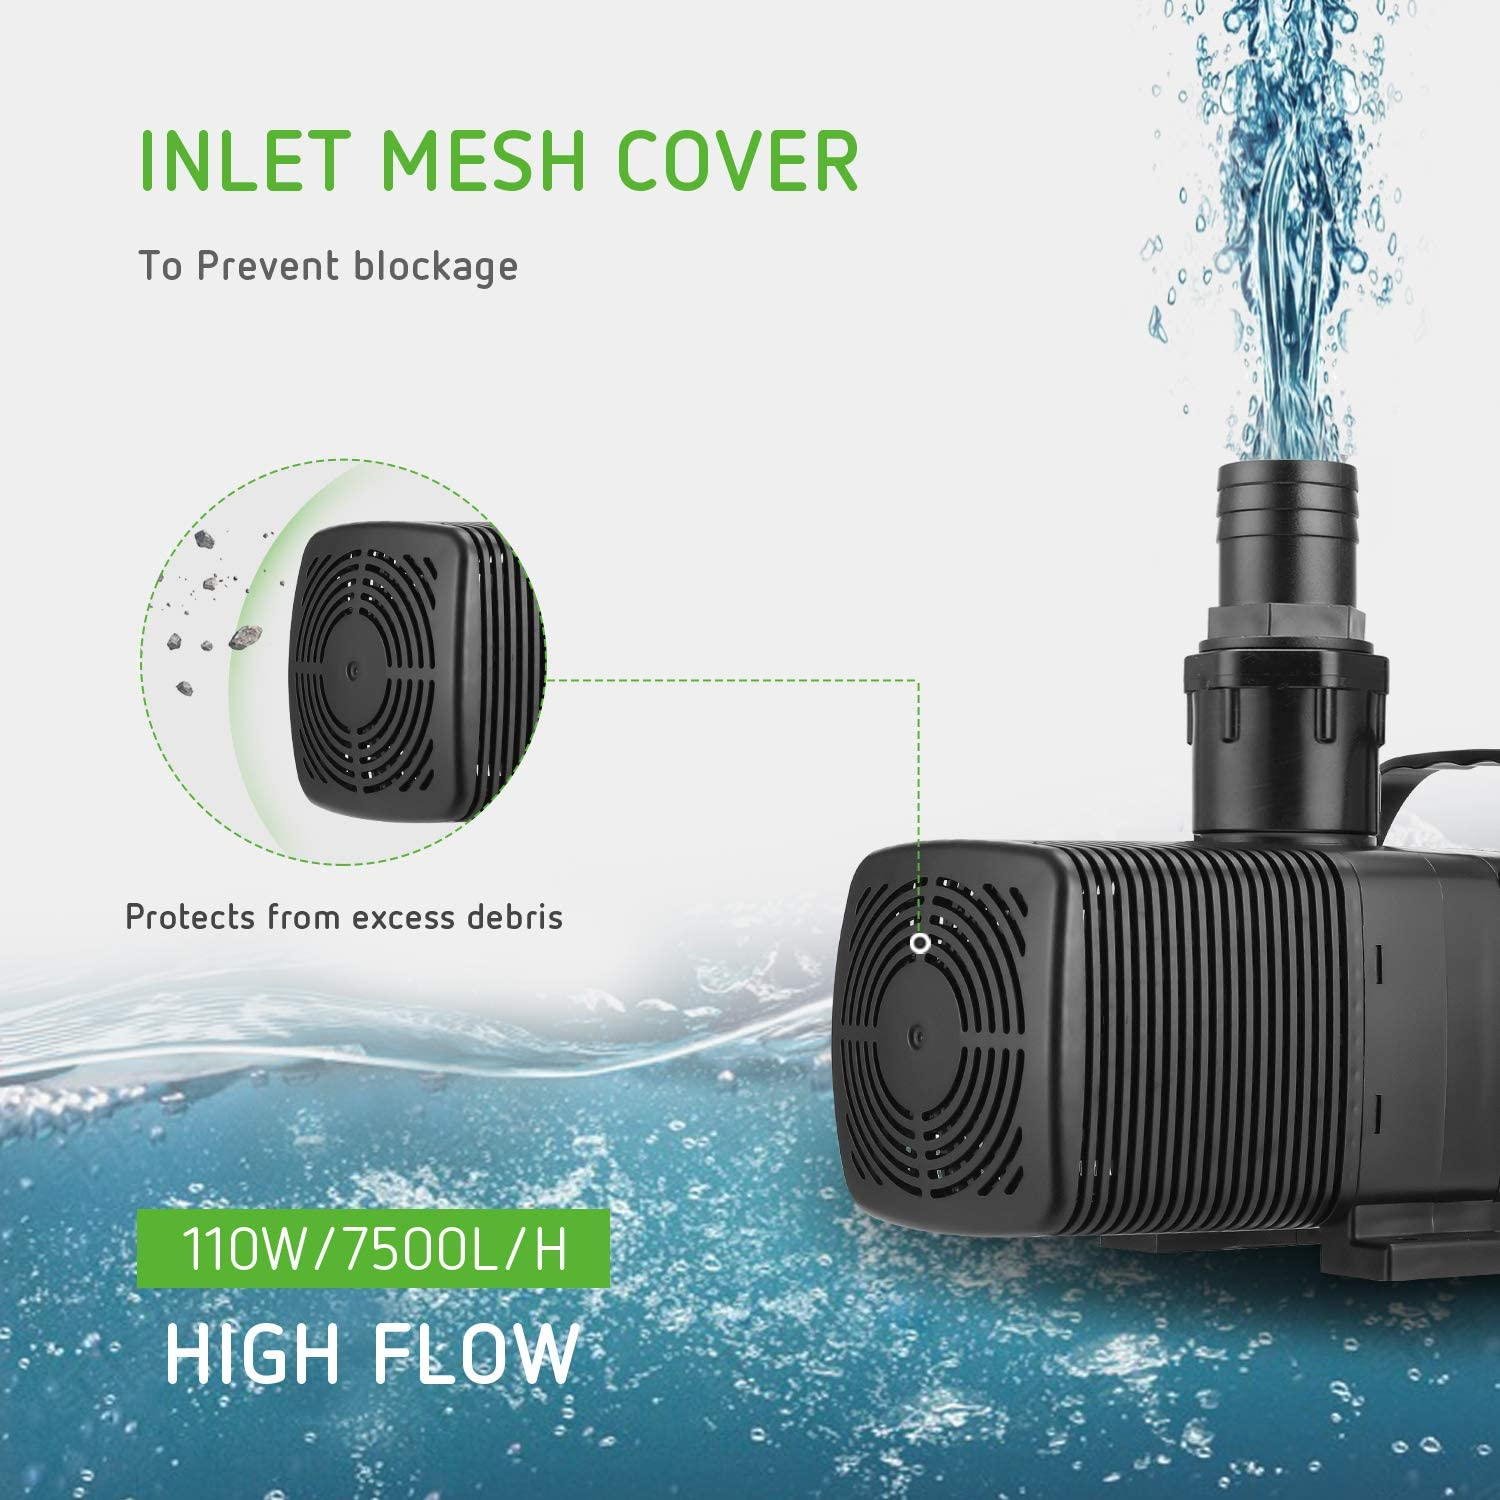 VIVOSUN 1982 GPH Submersible Water Pump110W Ultra Quiet Pump with 20.3ft Power Cord High Lift for Pond Waterfall Fish Tank Statuary Hydroponic